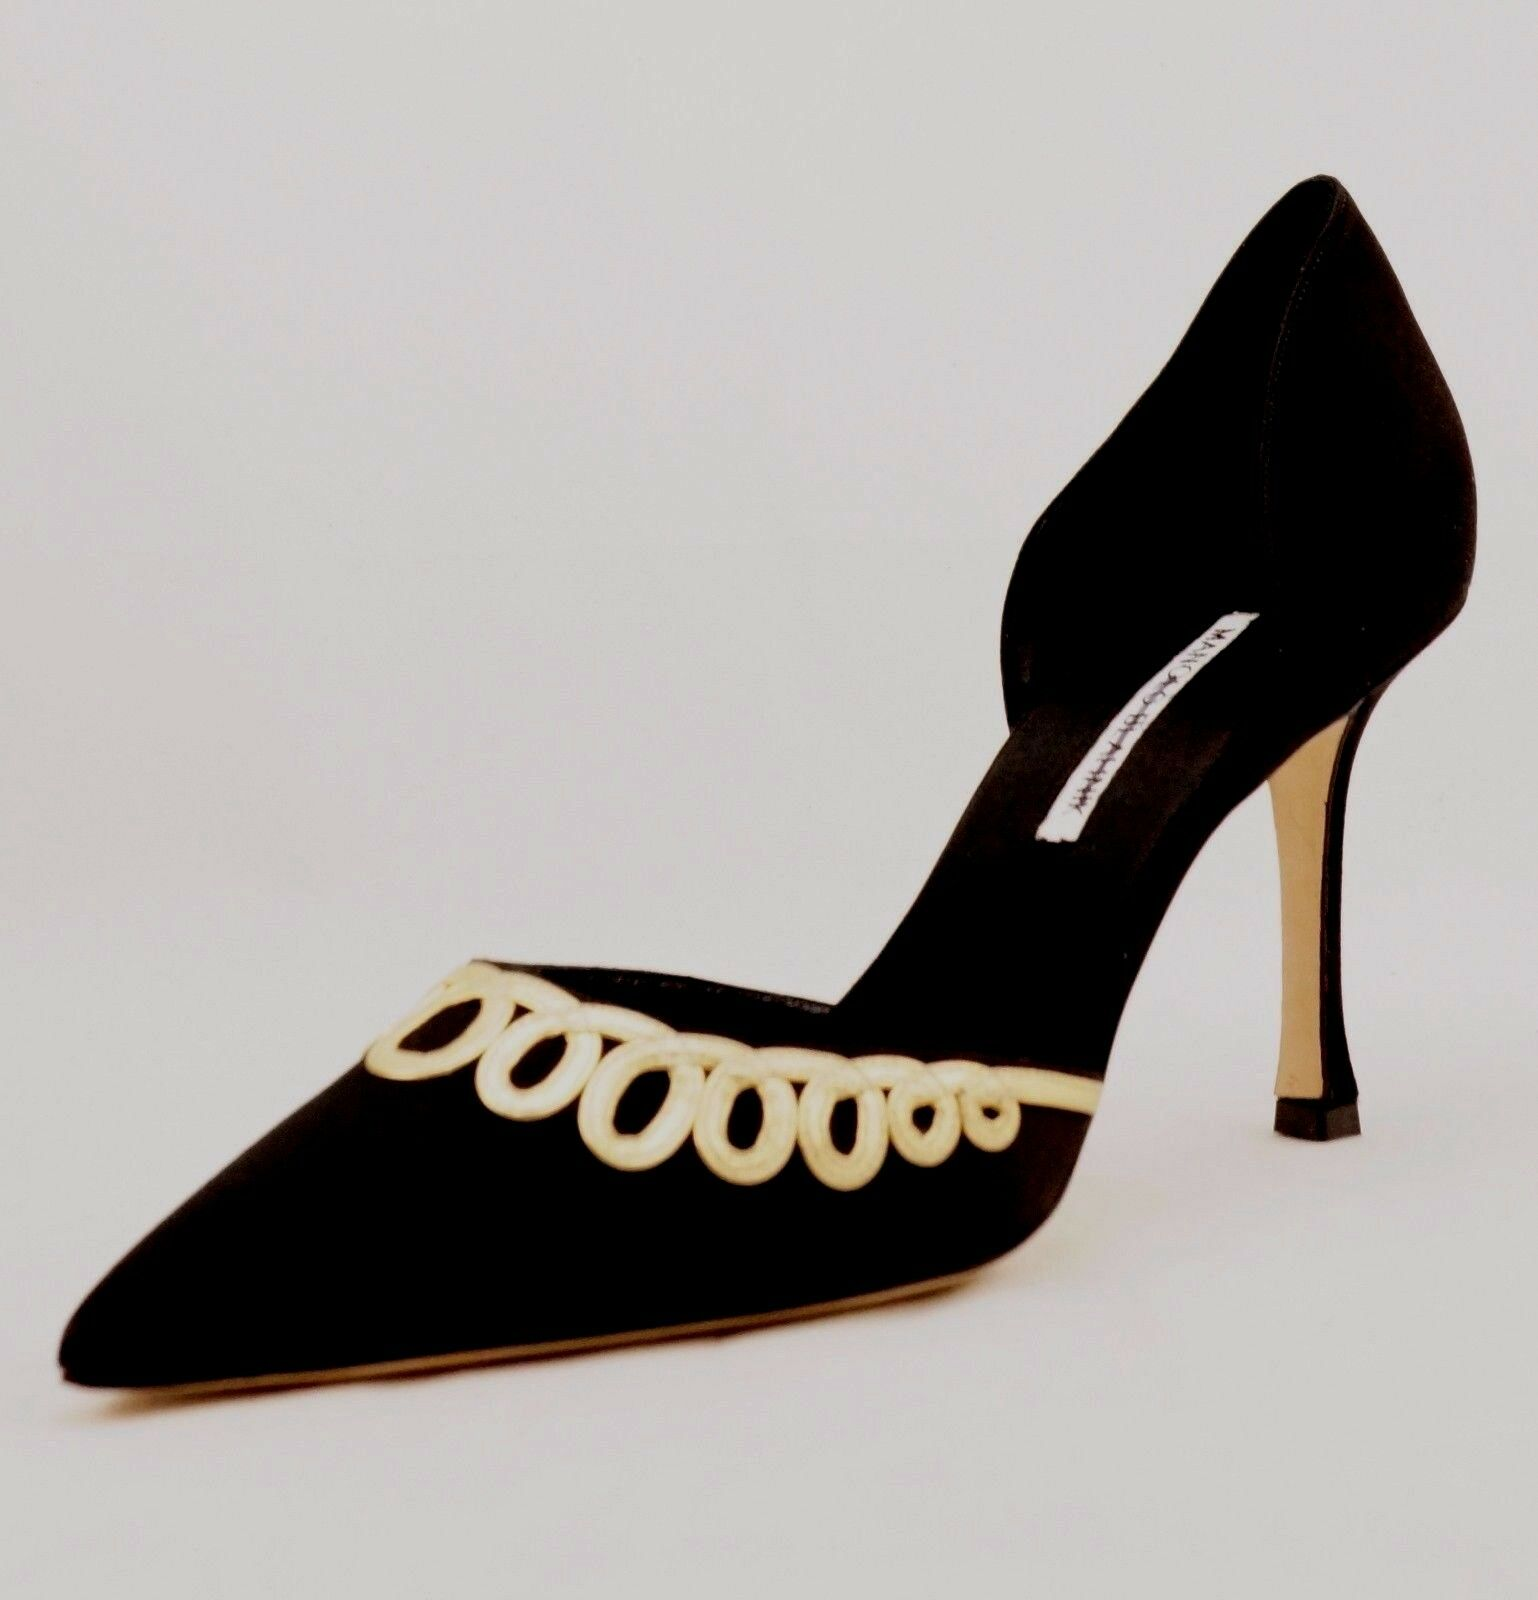 1165 Manolo Blahnik Black Satin Pumps gold Applique BB High Heels sz 41.5 New